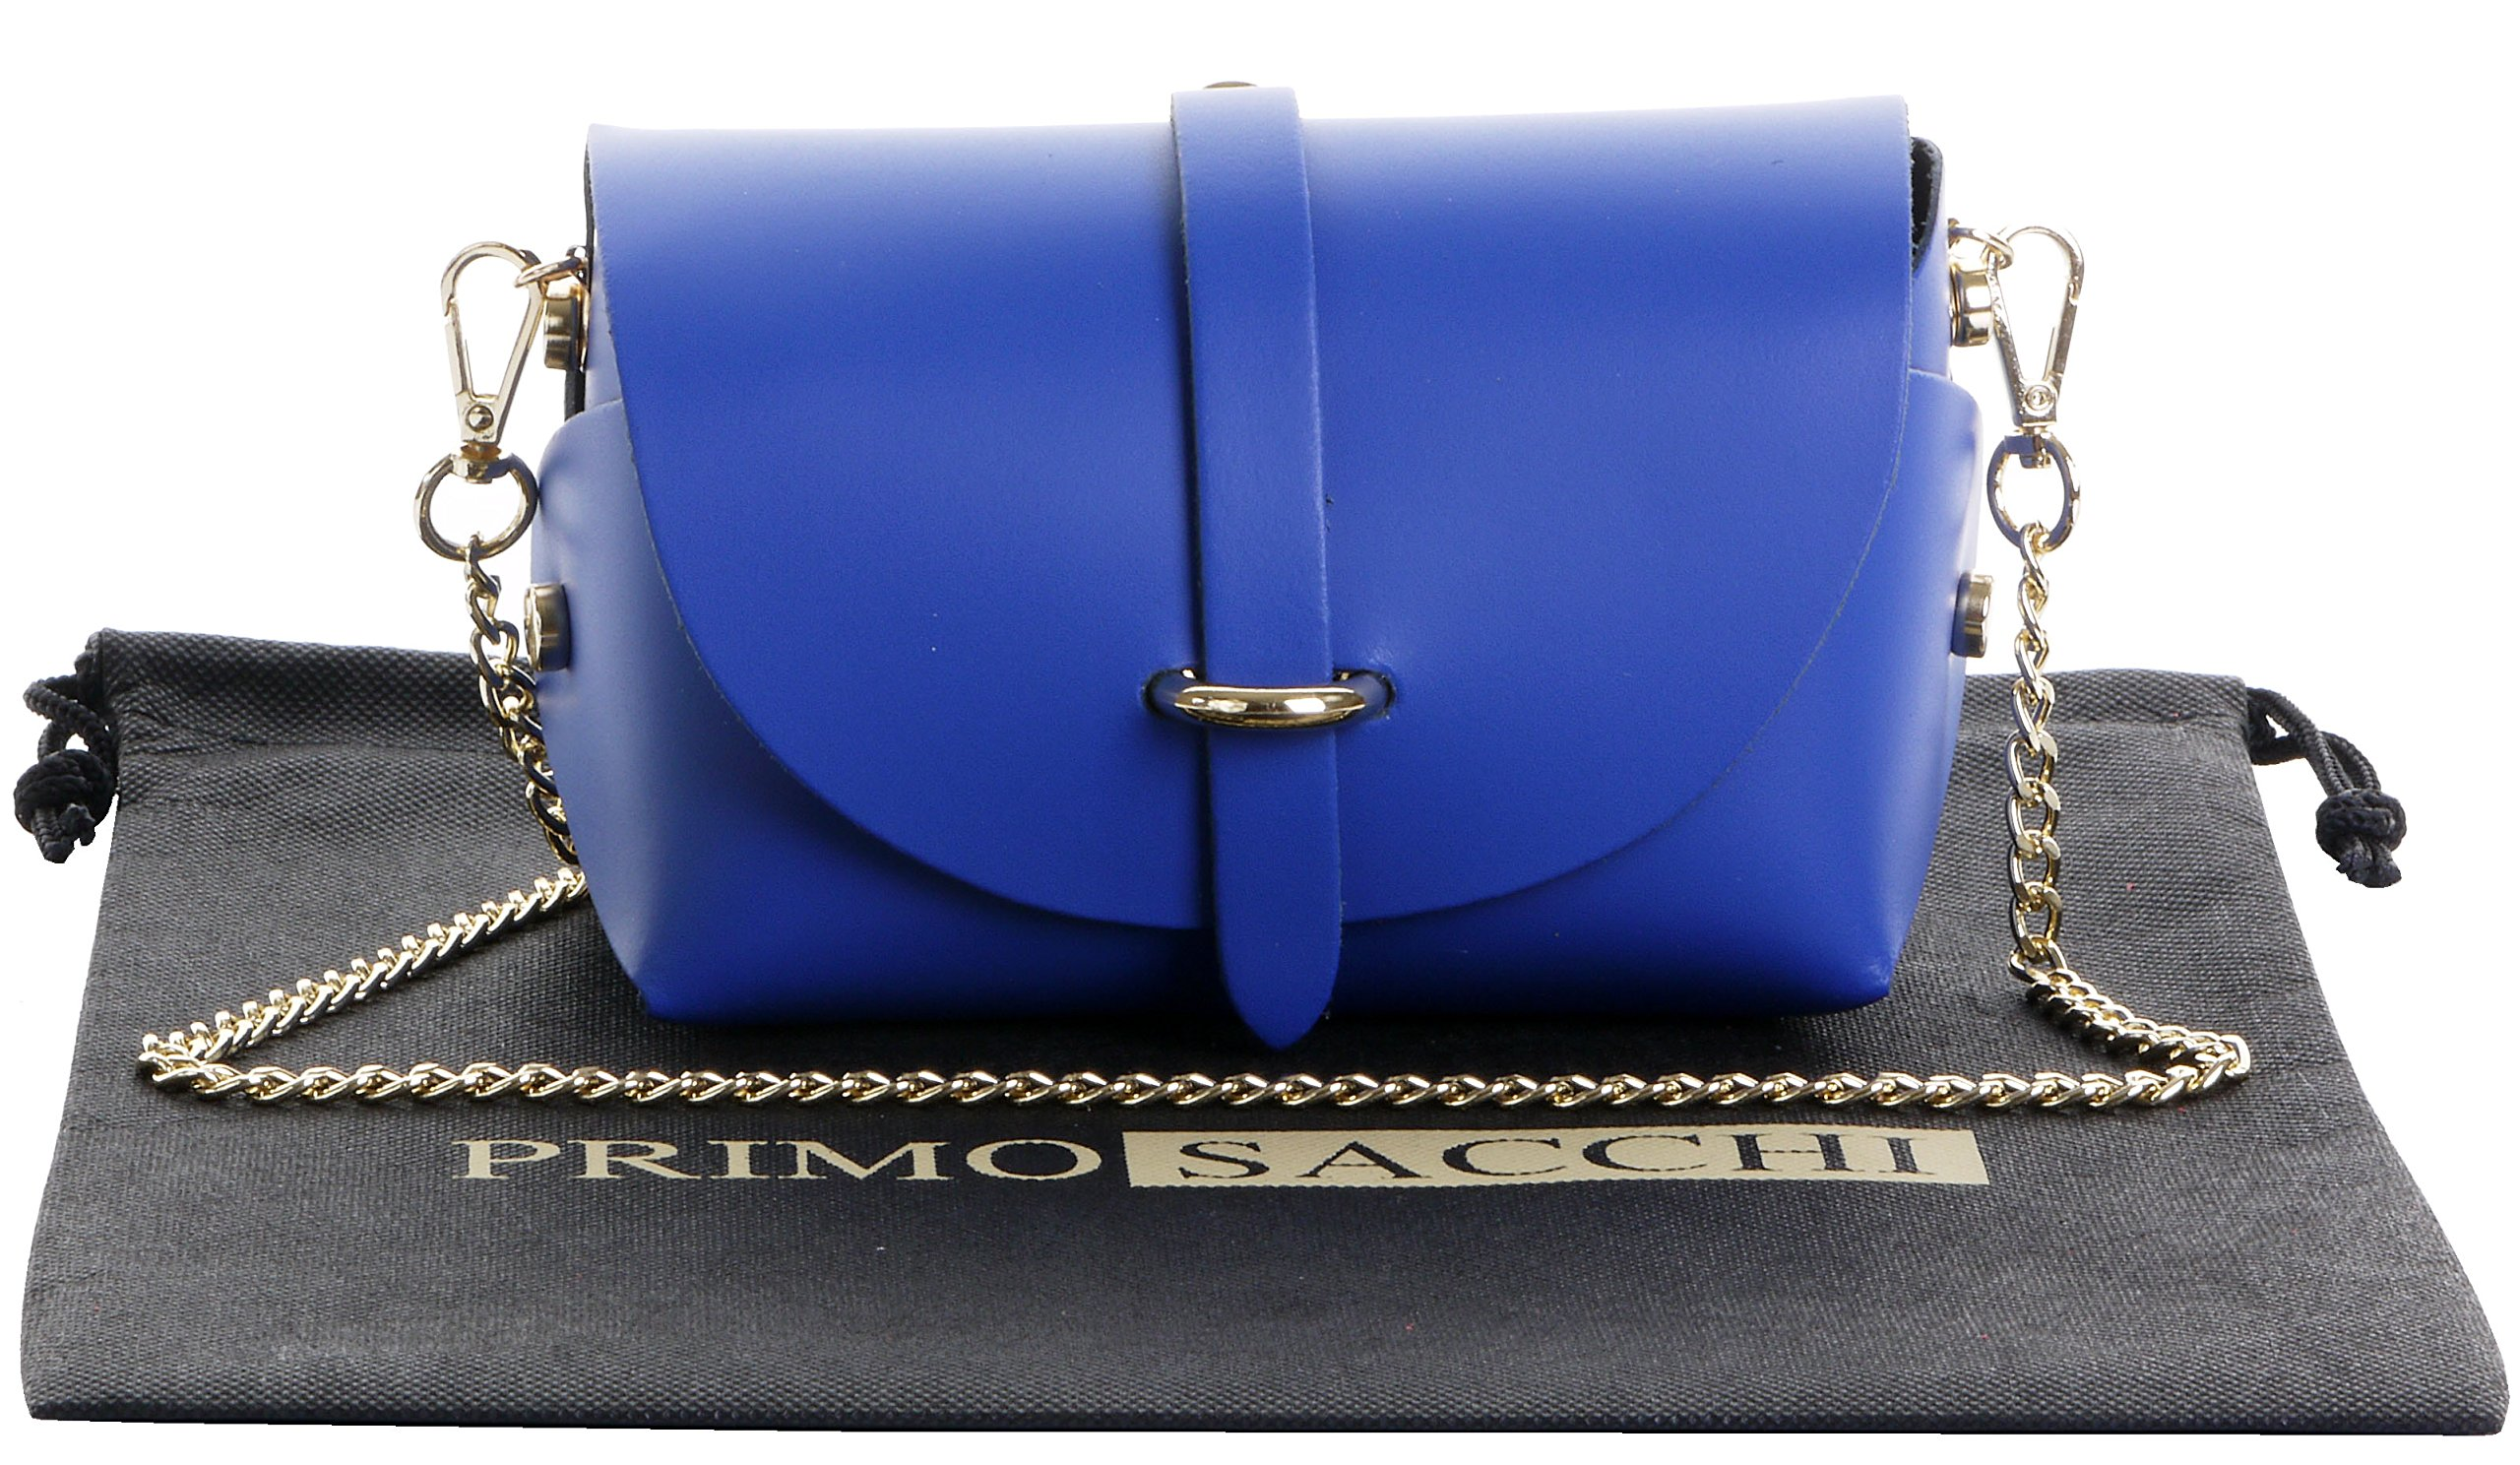 Primo Sacchi Italian Leather Mini Small Micro Royal Blue Shoulder Cross body Evening Bag With Metal Chain Strap